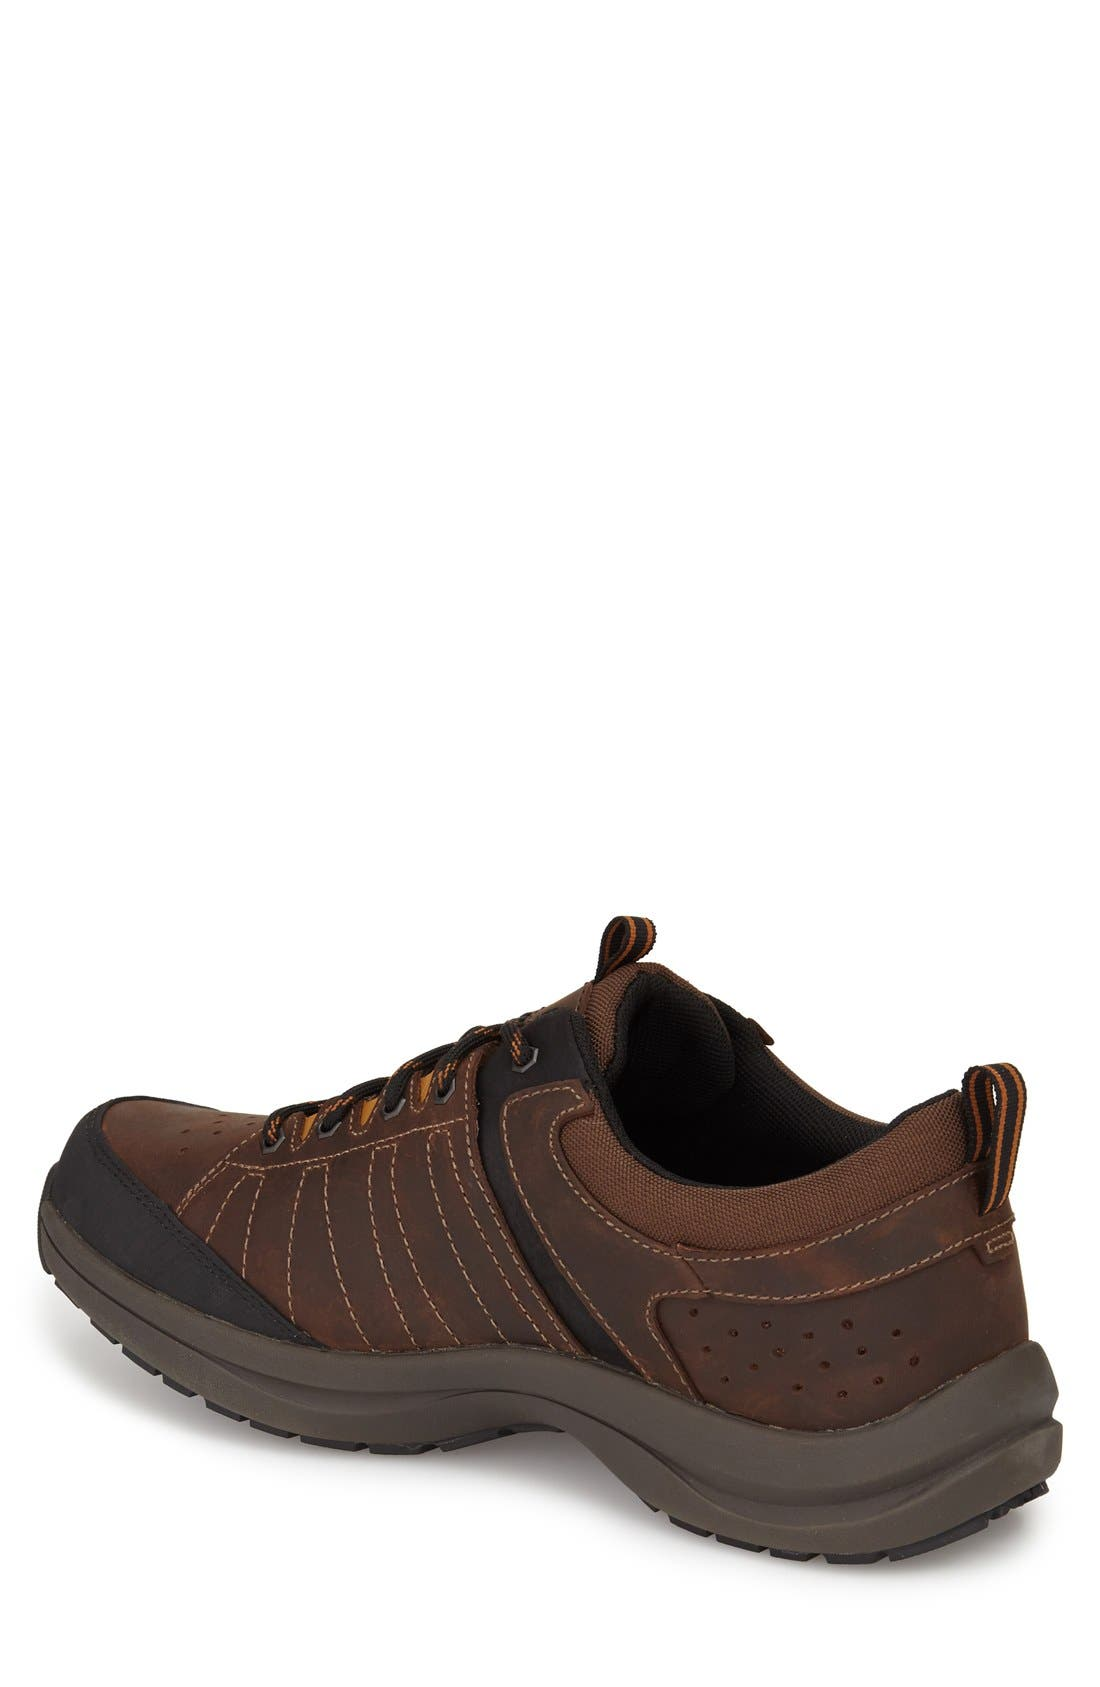 DUNHAM, Seth-Dun Waterproof Sneaker, Alternate thumbnail 2, color, BROWN LEATHER